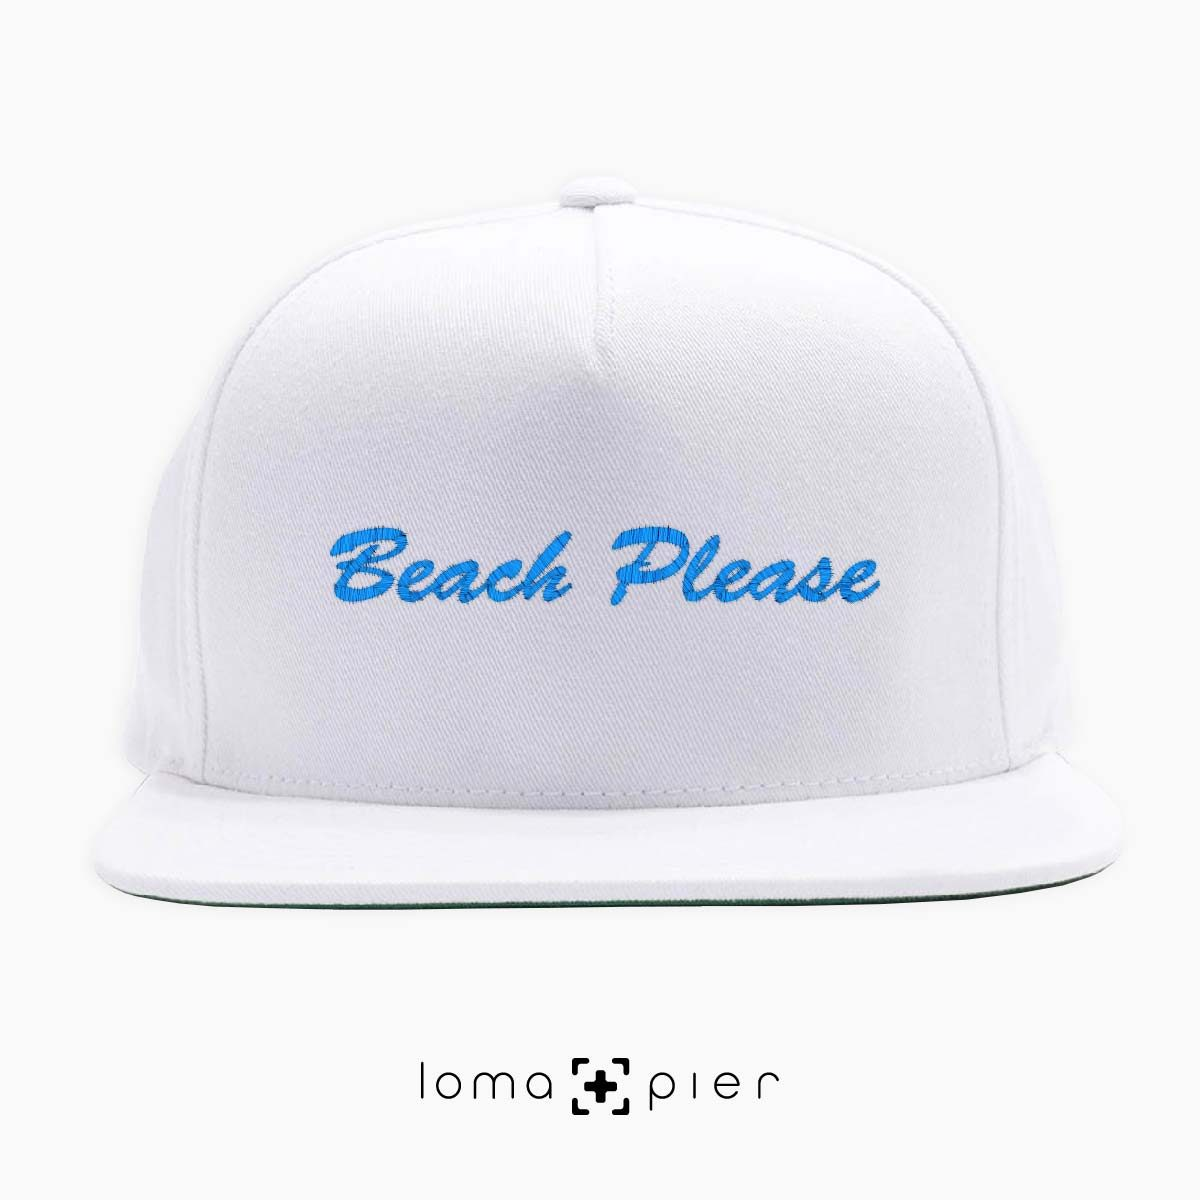 BEACH PLEASE embroidered on a white classic snapback hat with blue thread by loma+pier hat store